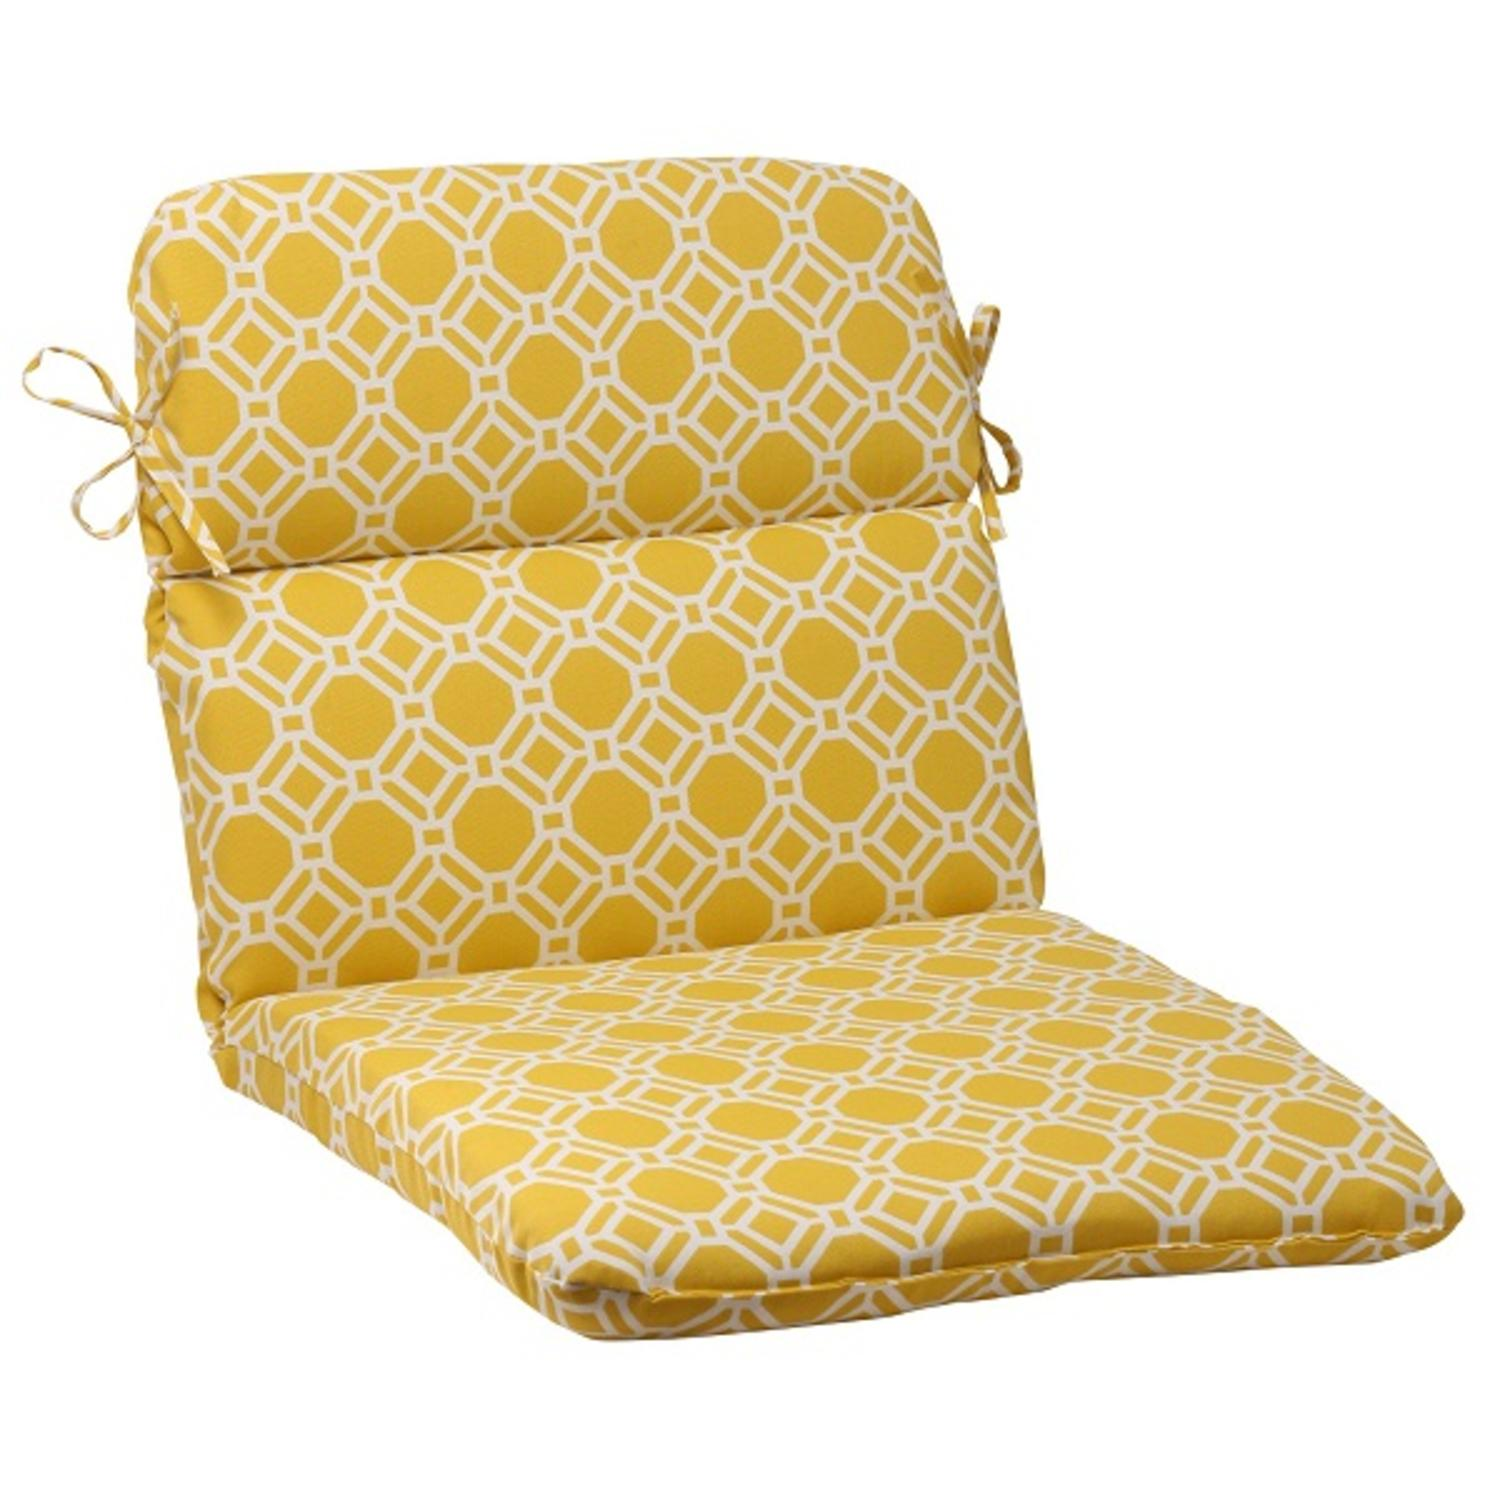 "40.5"" Sunny Yellow and White Round Outdoor Patio Wicker Chair Cushion"